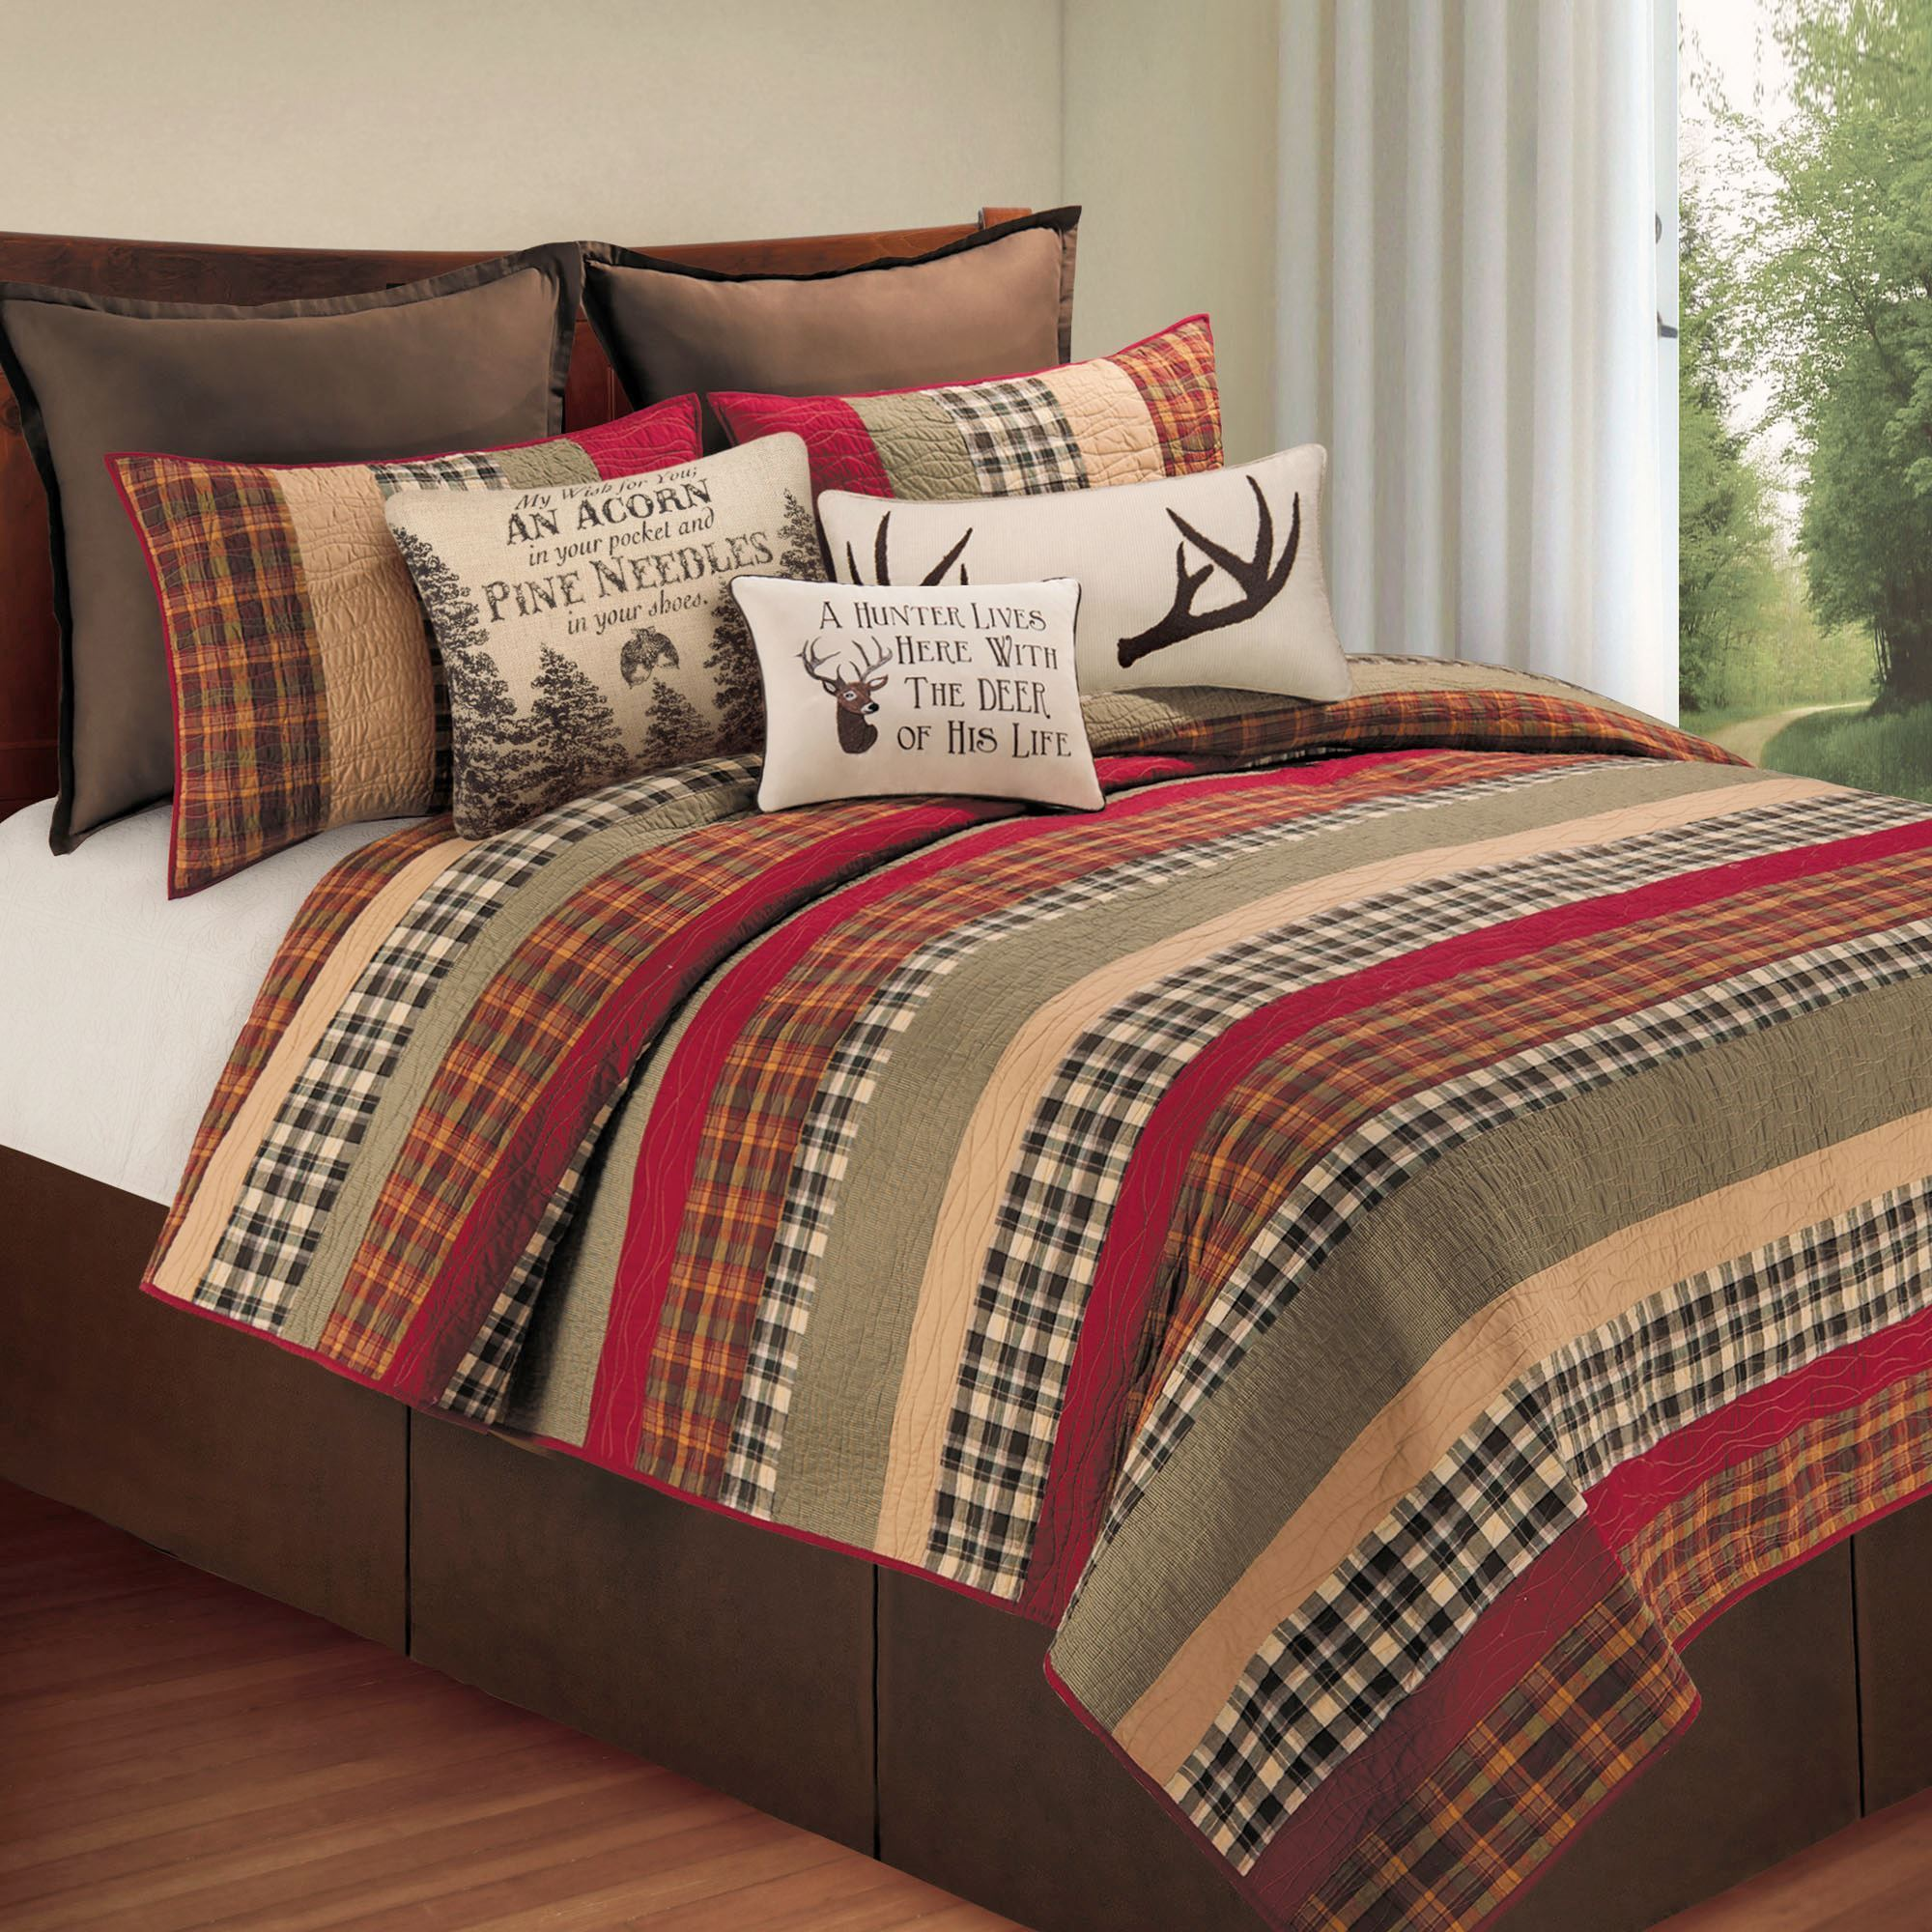 Hillside Haven Rustic Plaid Quilt Bedding : king size quilt bedding - Adamdwight.com